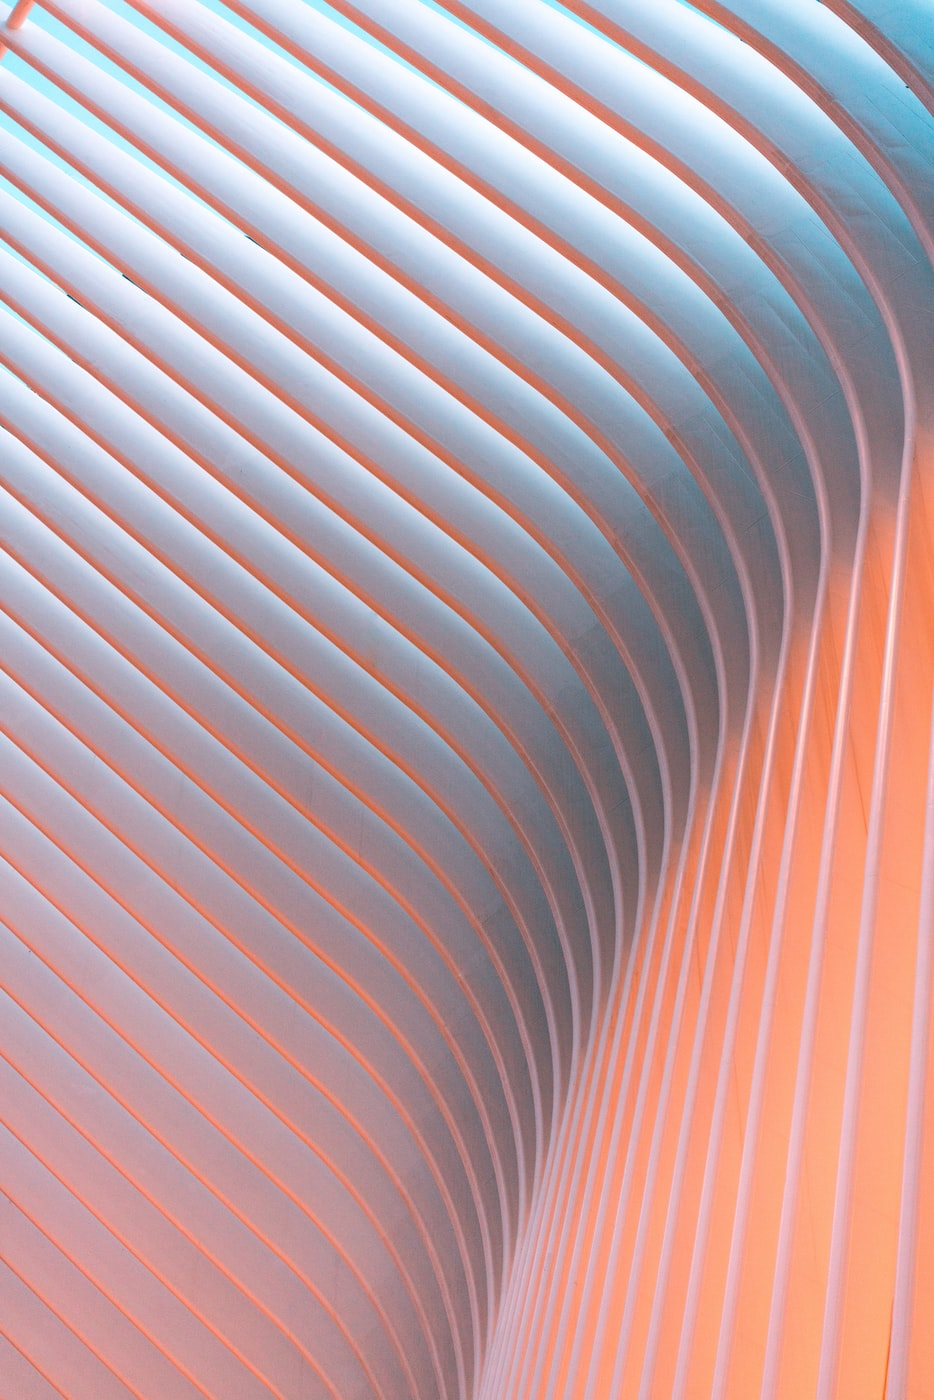 Decorative line background with a blue gradient